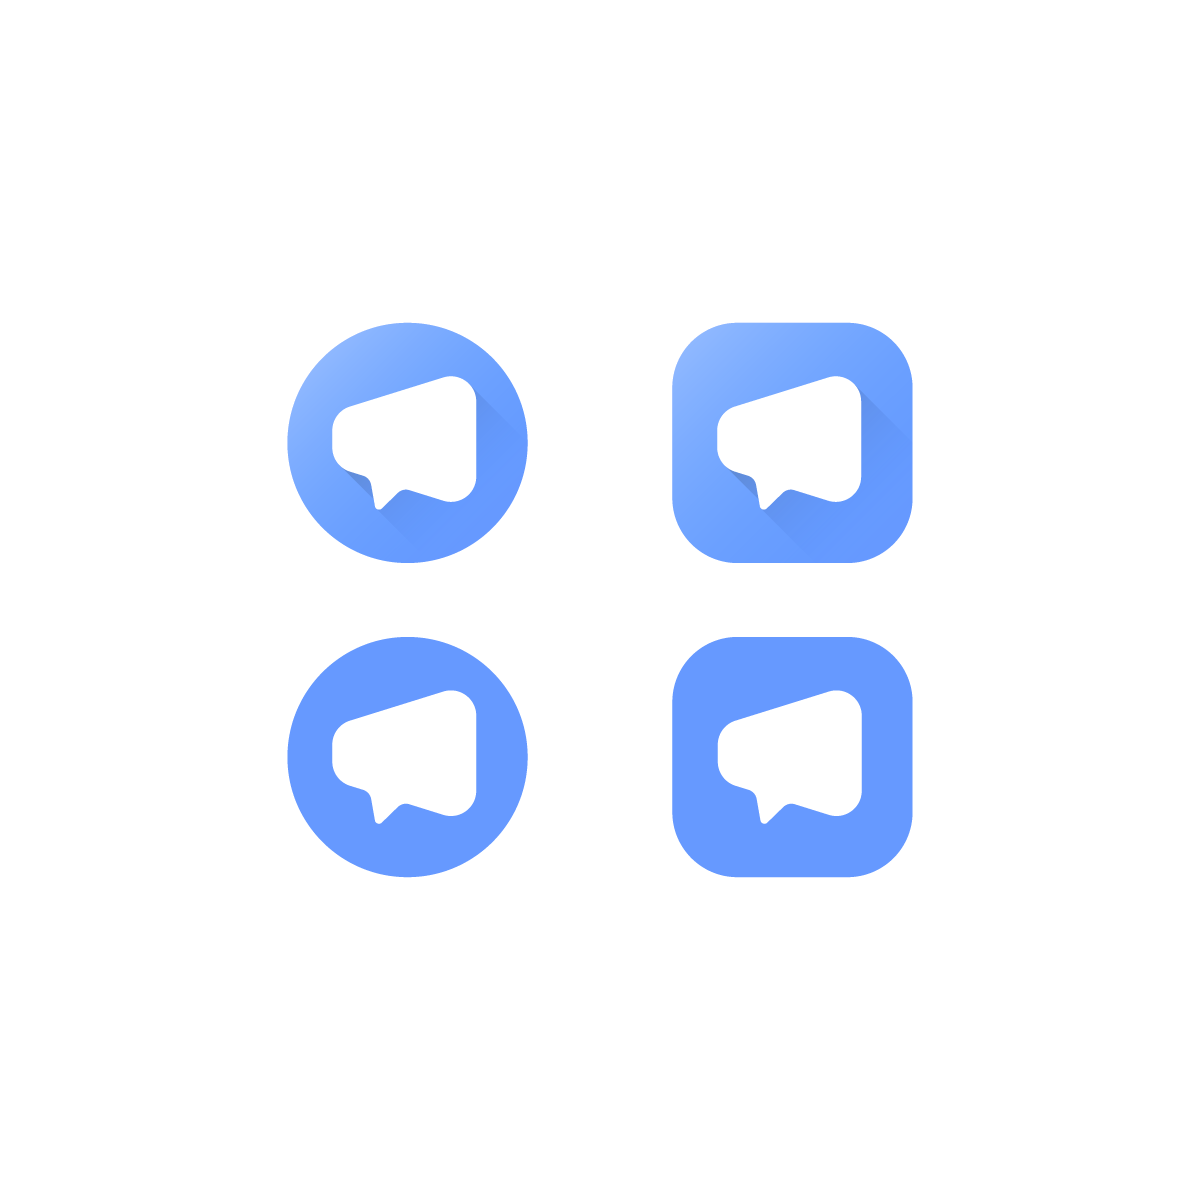 Create a Logo for a new Chat App